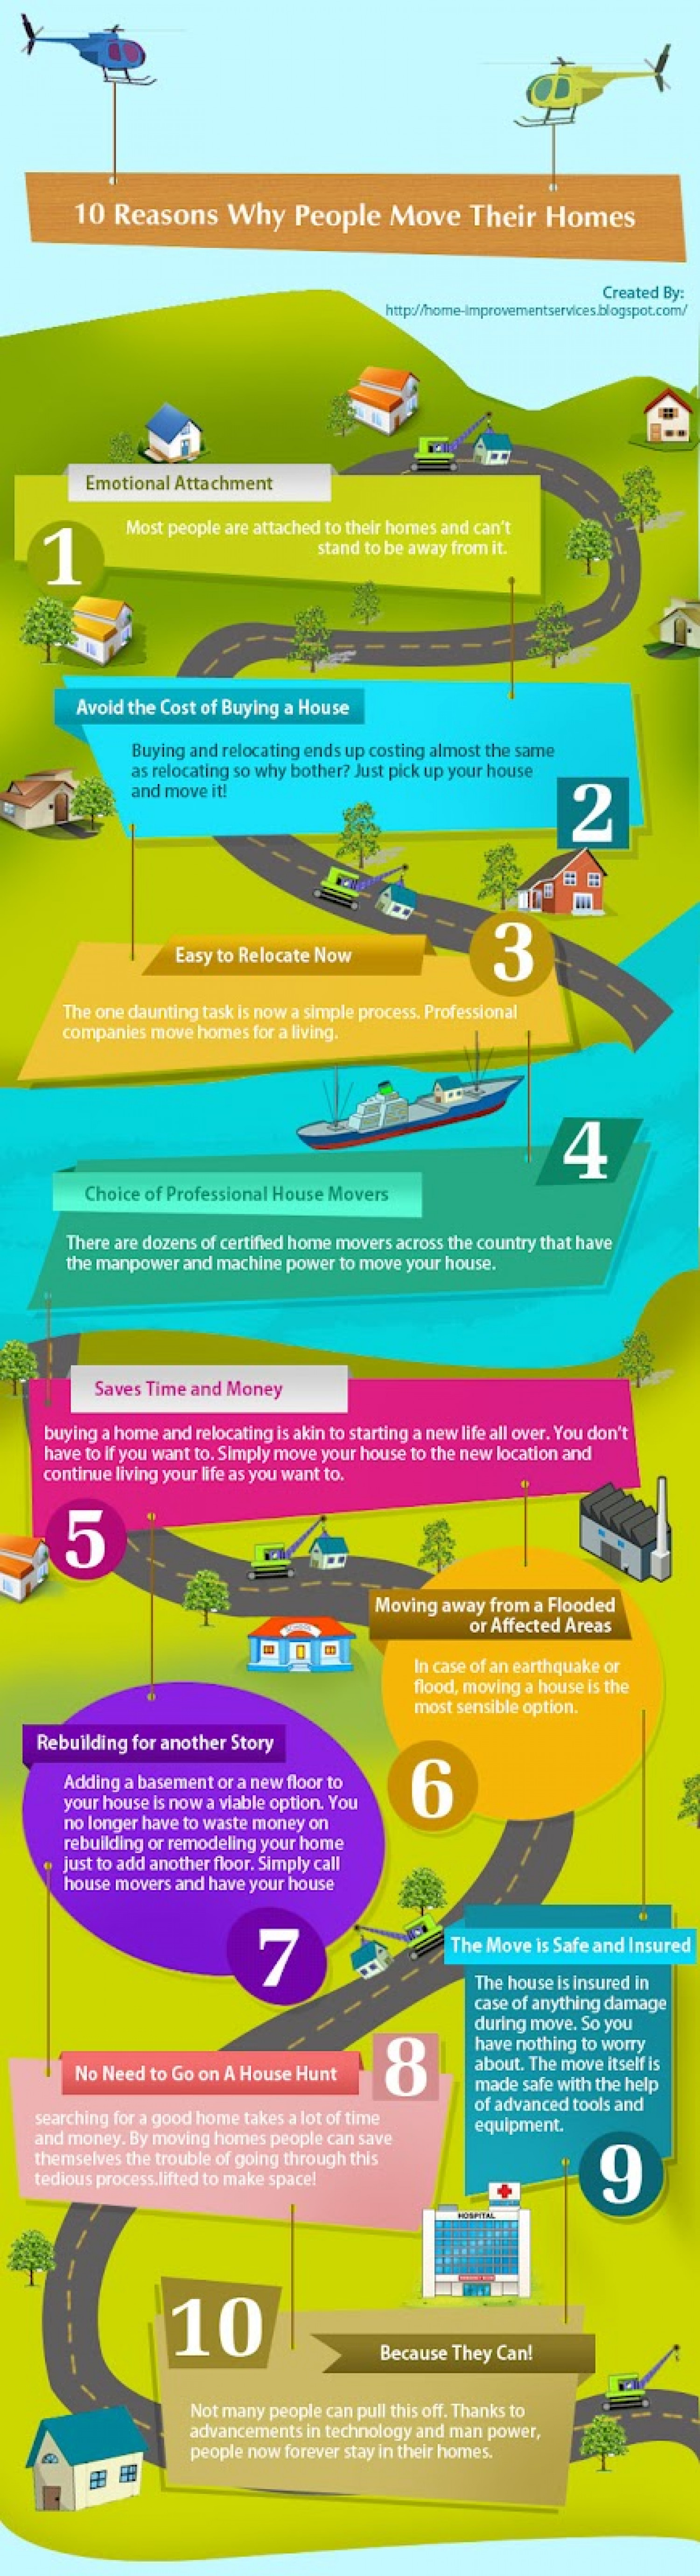 10 Reasons Why People Move Their Homes Infographic